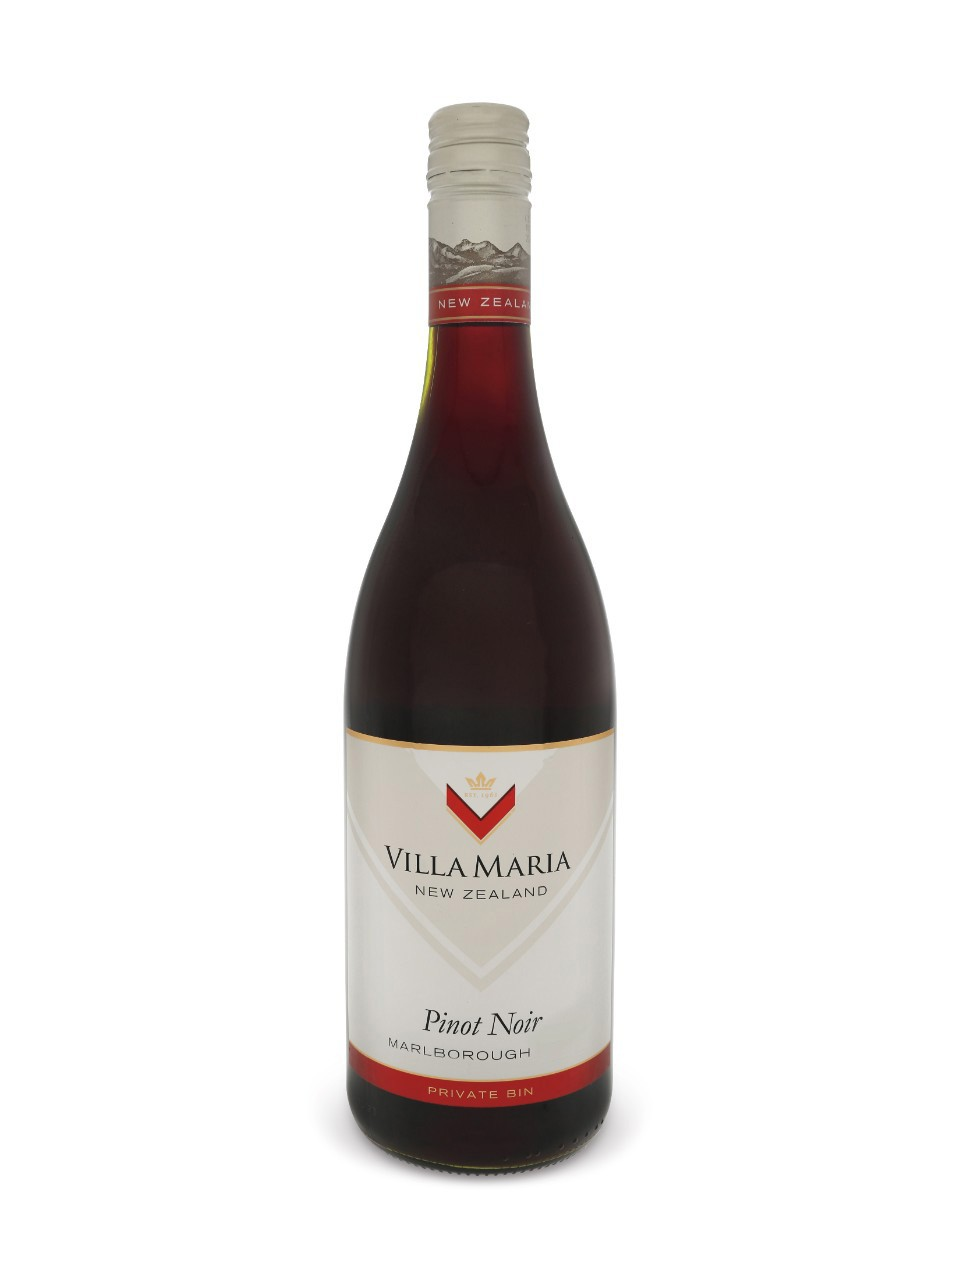 Image for Villa Maria Private Bin Pinot Noir Marlborough from LCBO